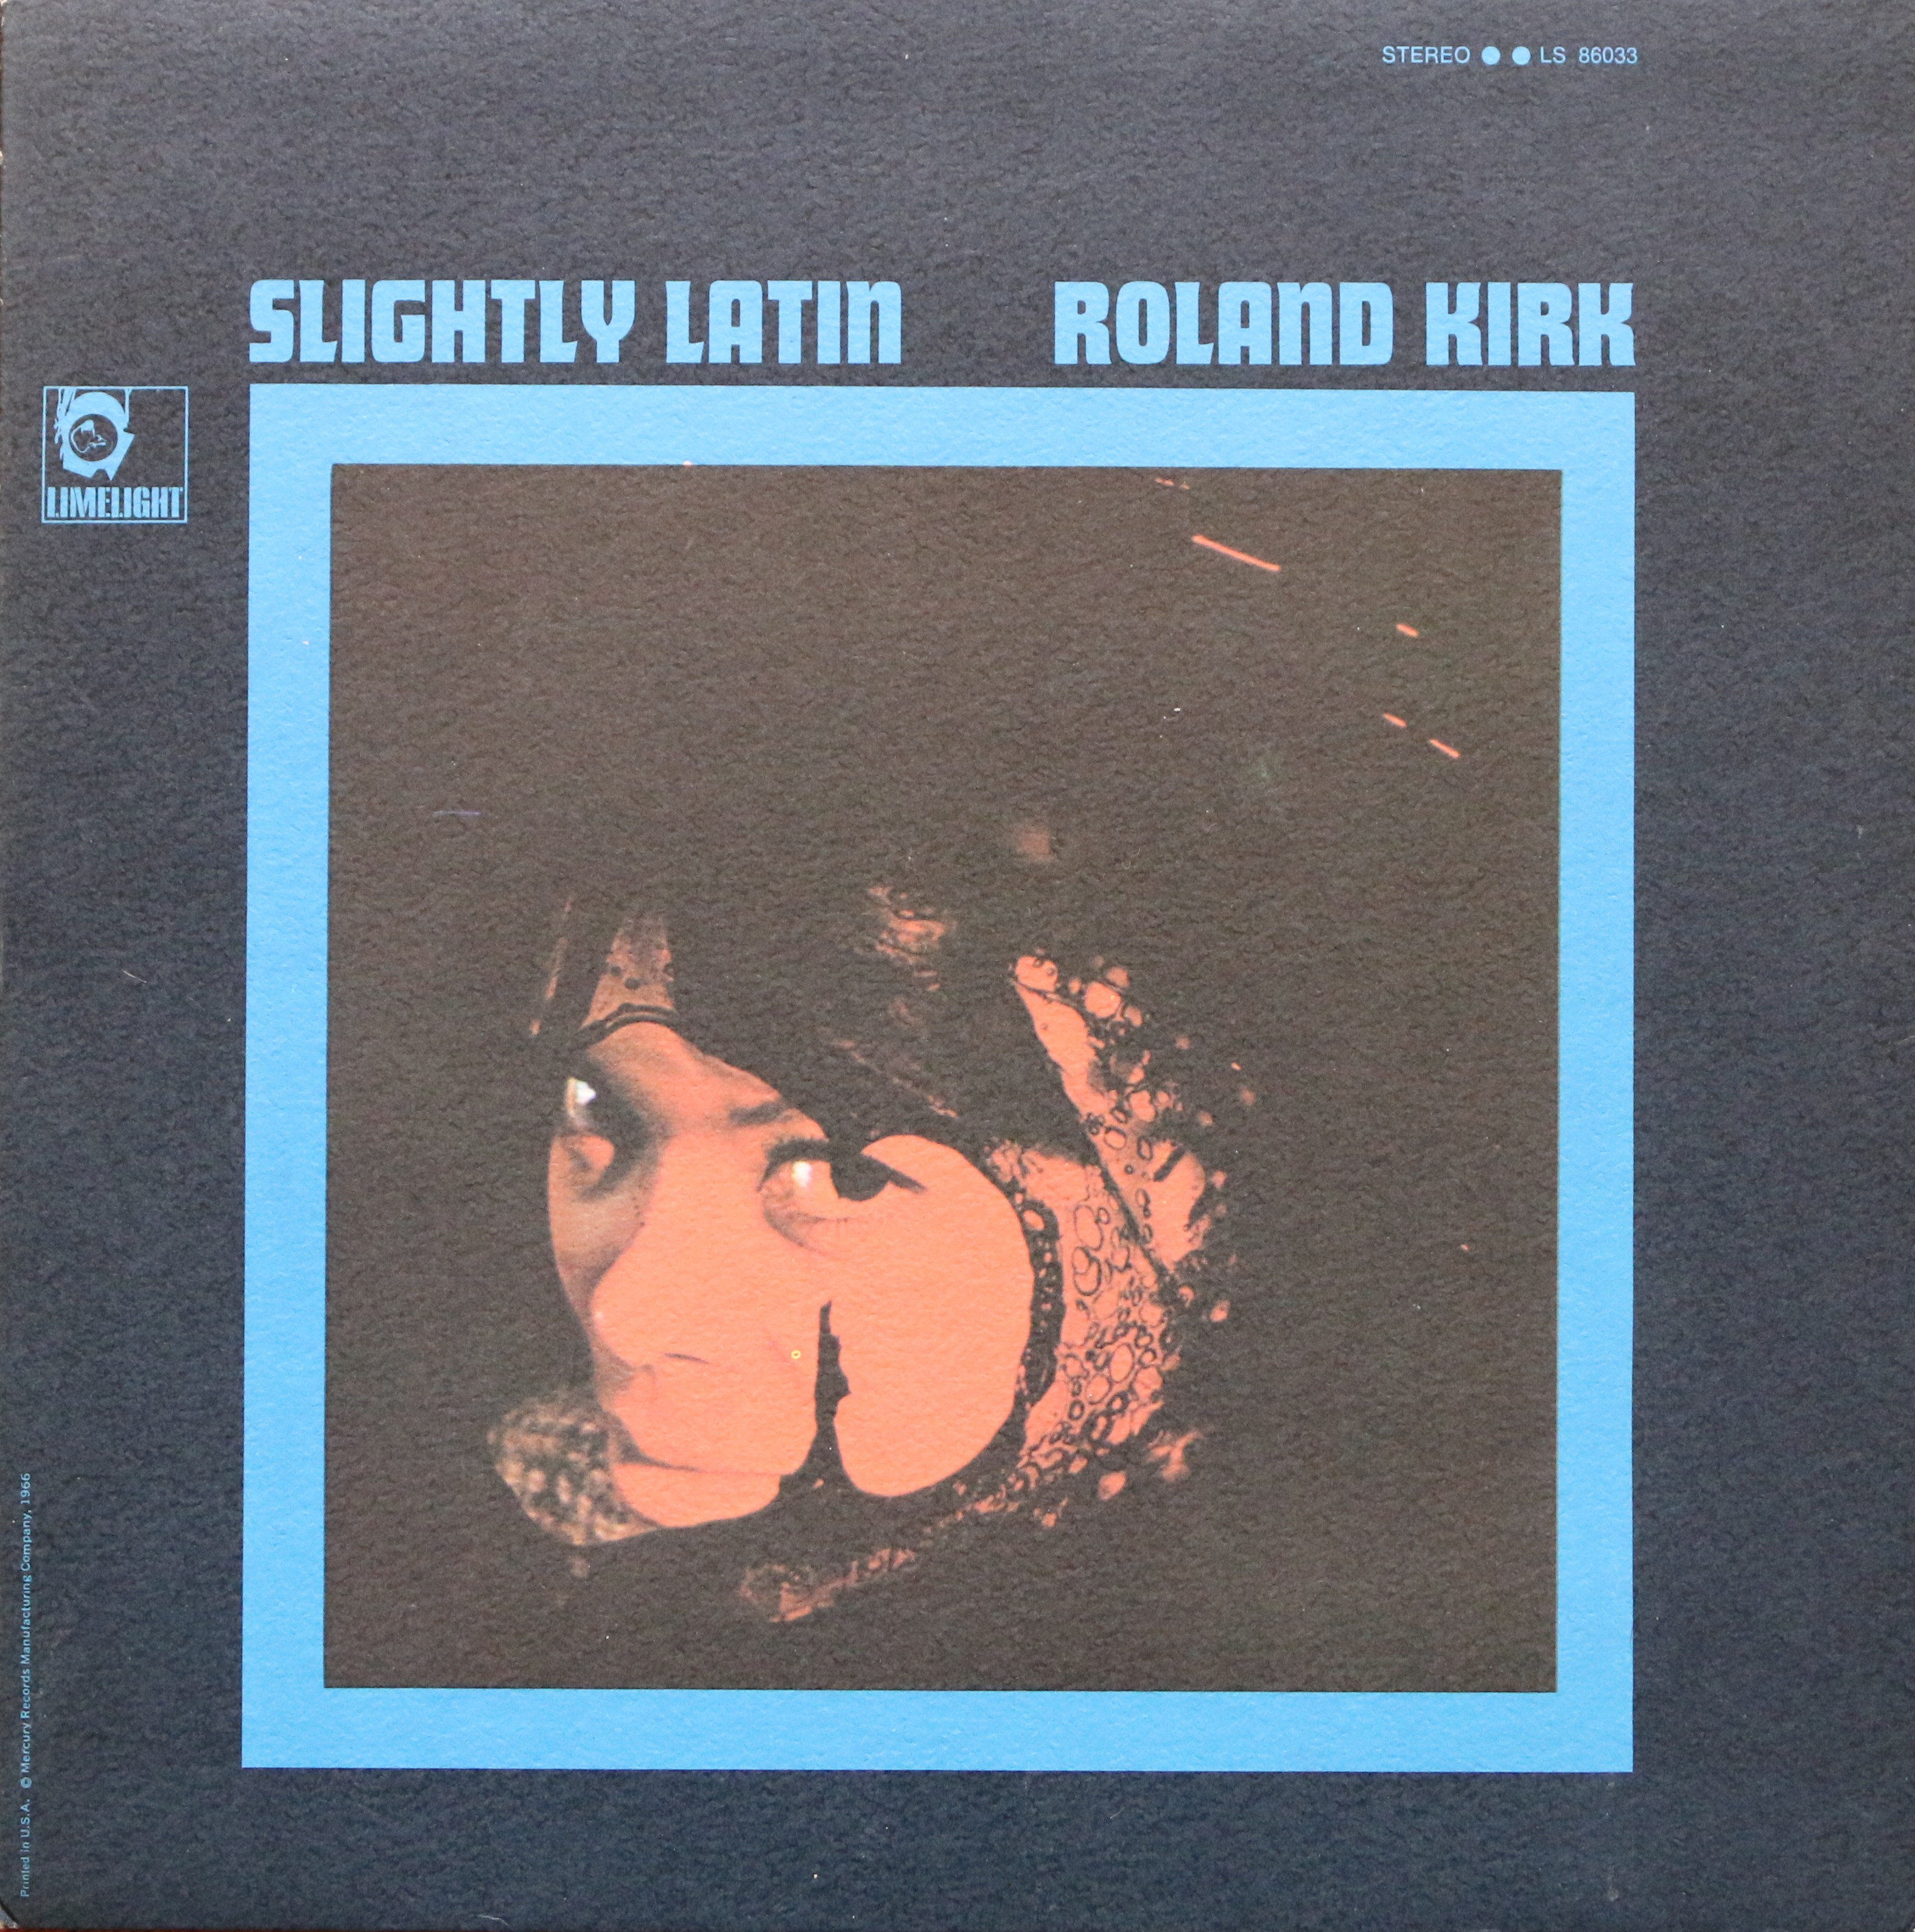 Dig Deep: Rahsaan Roland Kirk - Slightly Latin - Limelight (1965)